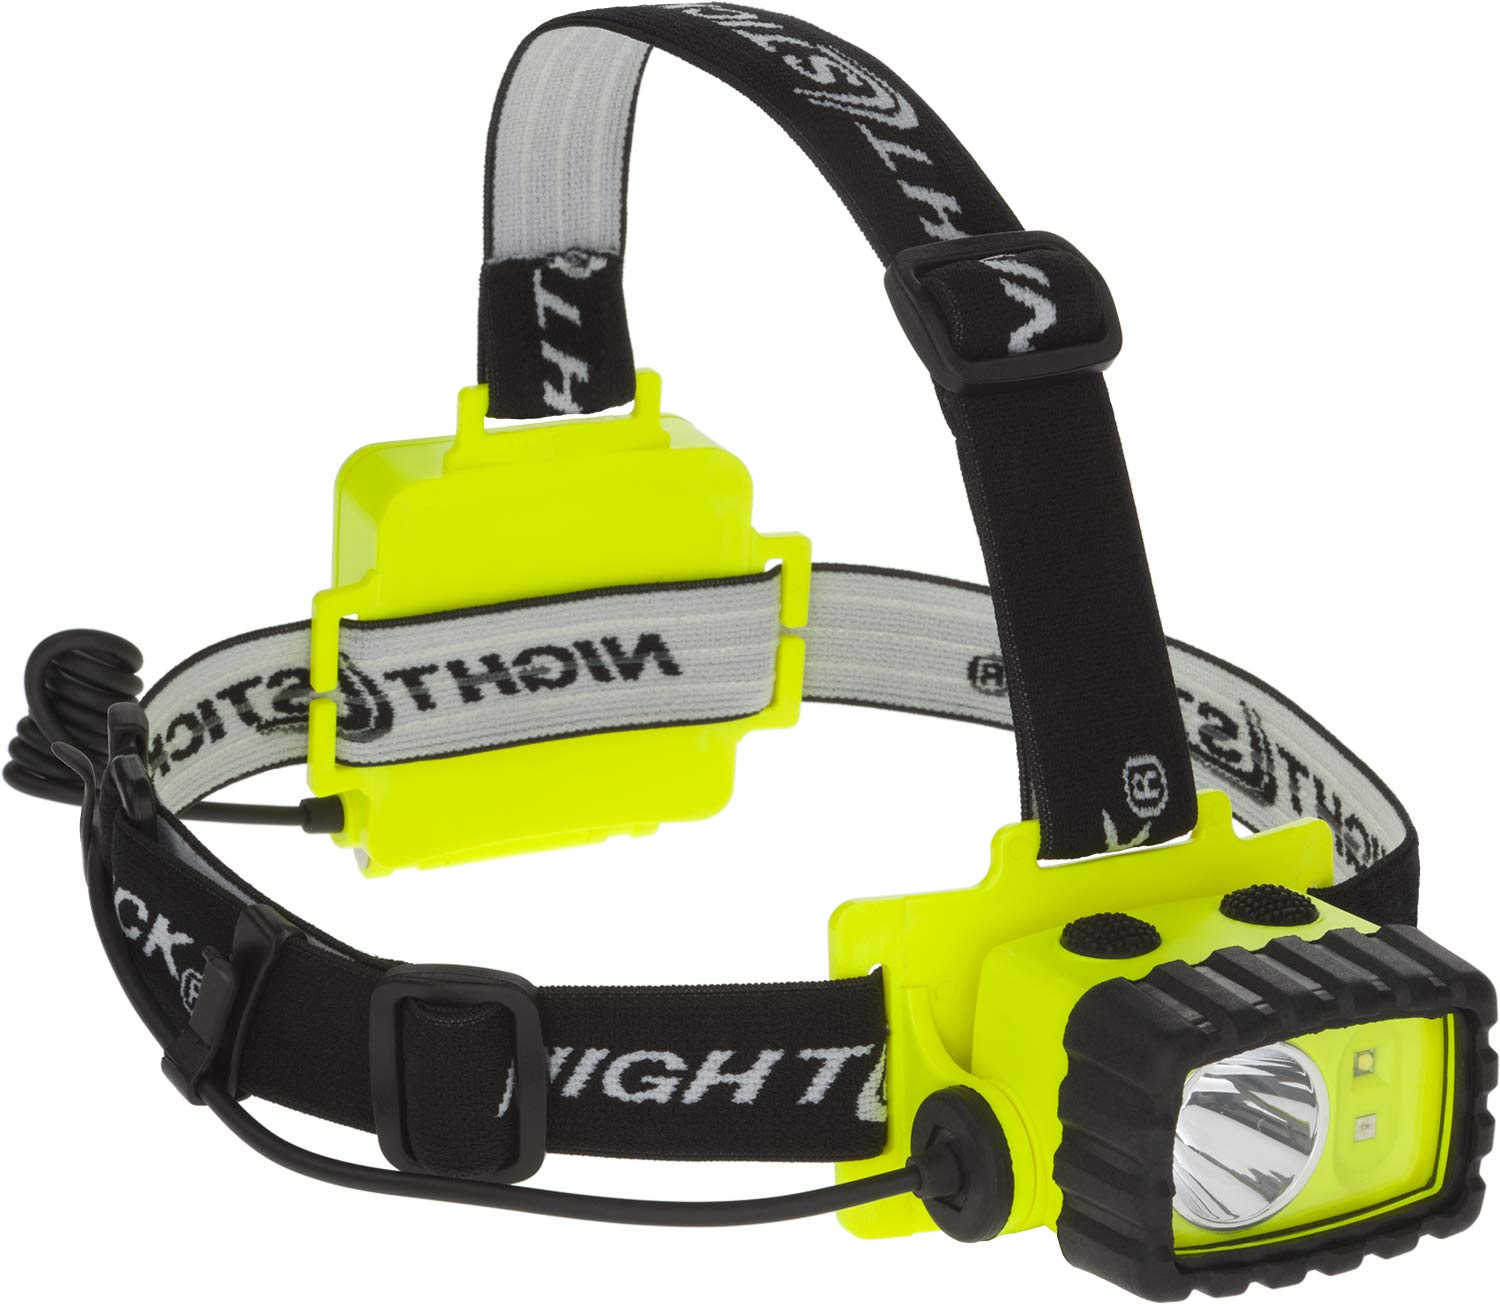 Nightstick XPP-5458G Intrinsically Safe Permissible Dual-Light Multi-Function Headlamp, Green by Nightstick